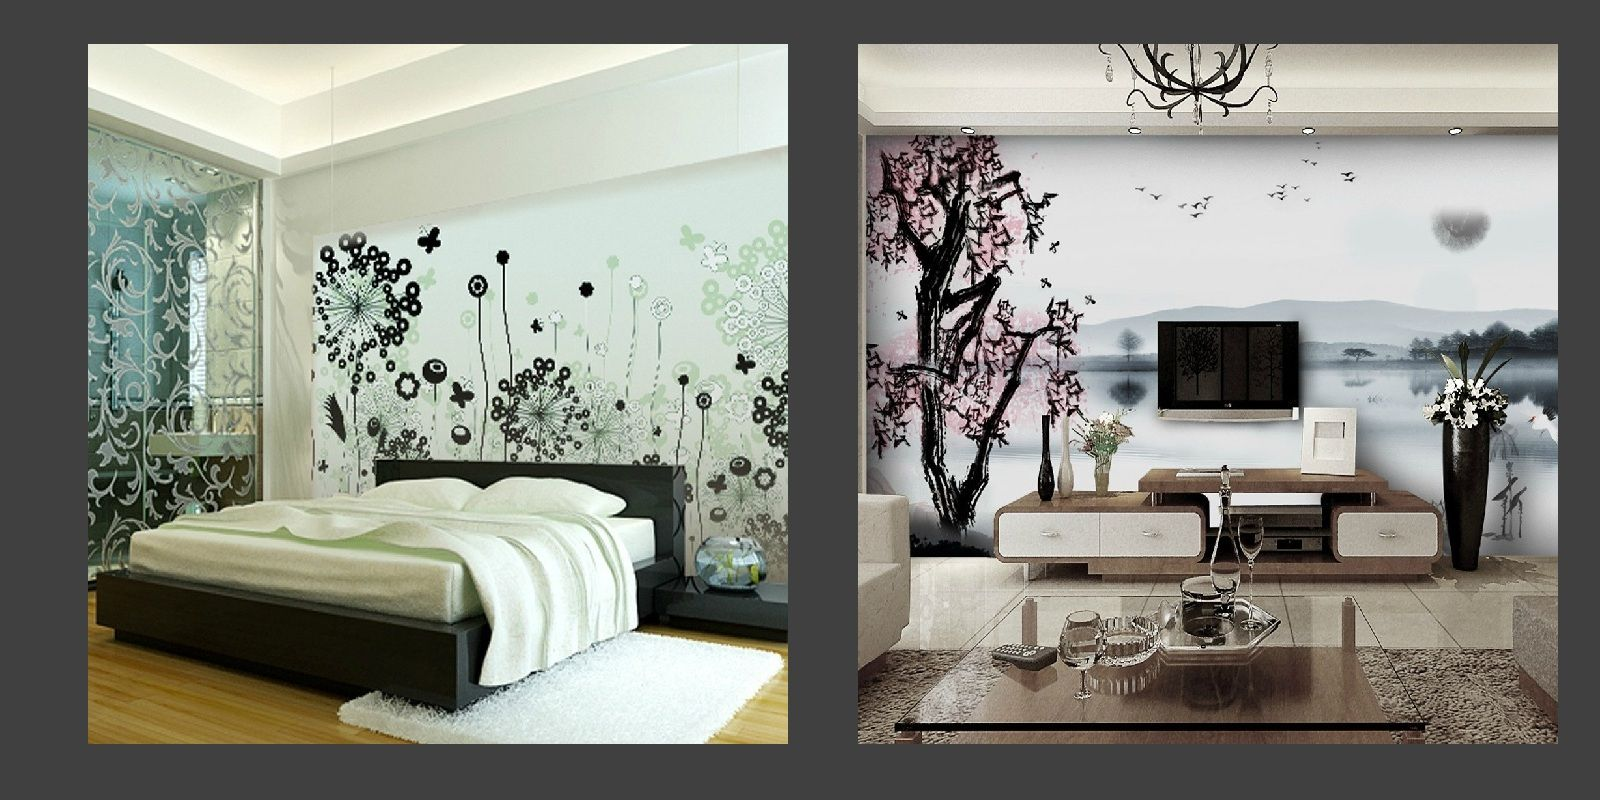 Home wallpaper design patterns home wallpaper designs for Wallpapers designs for home interiors